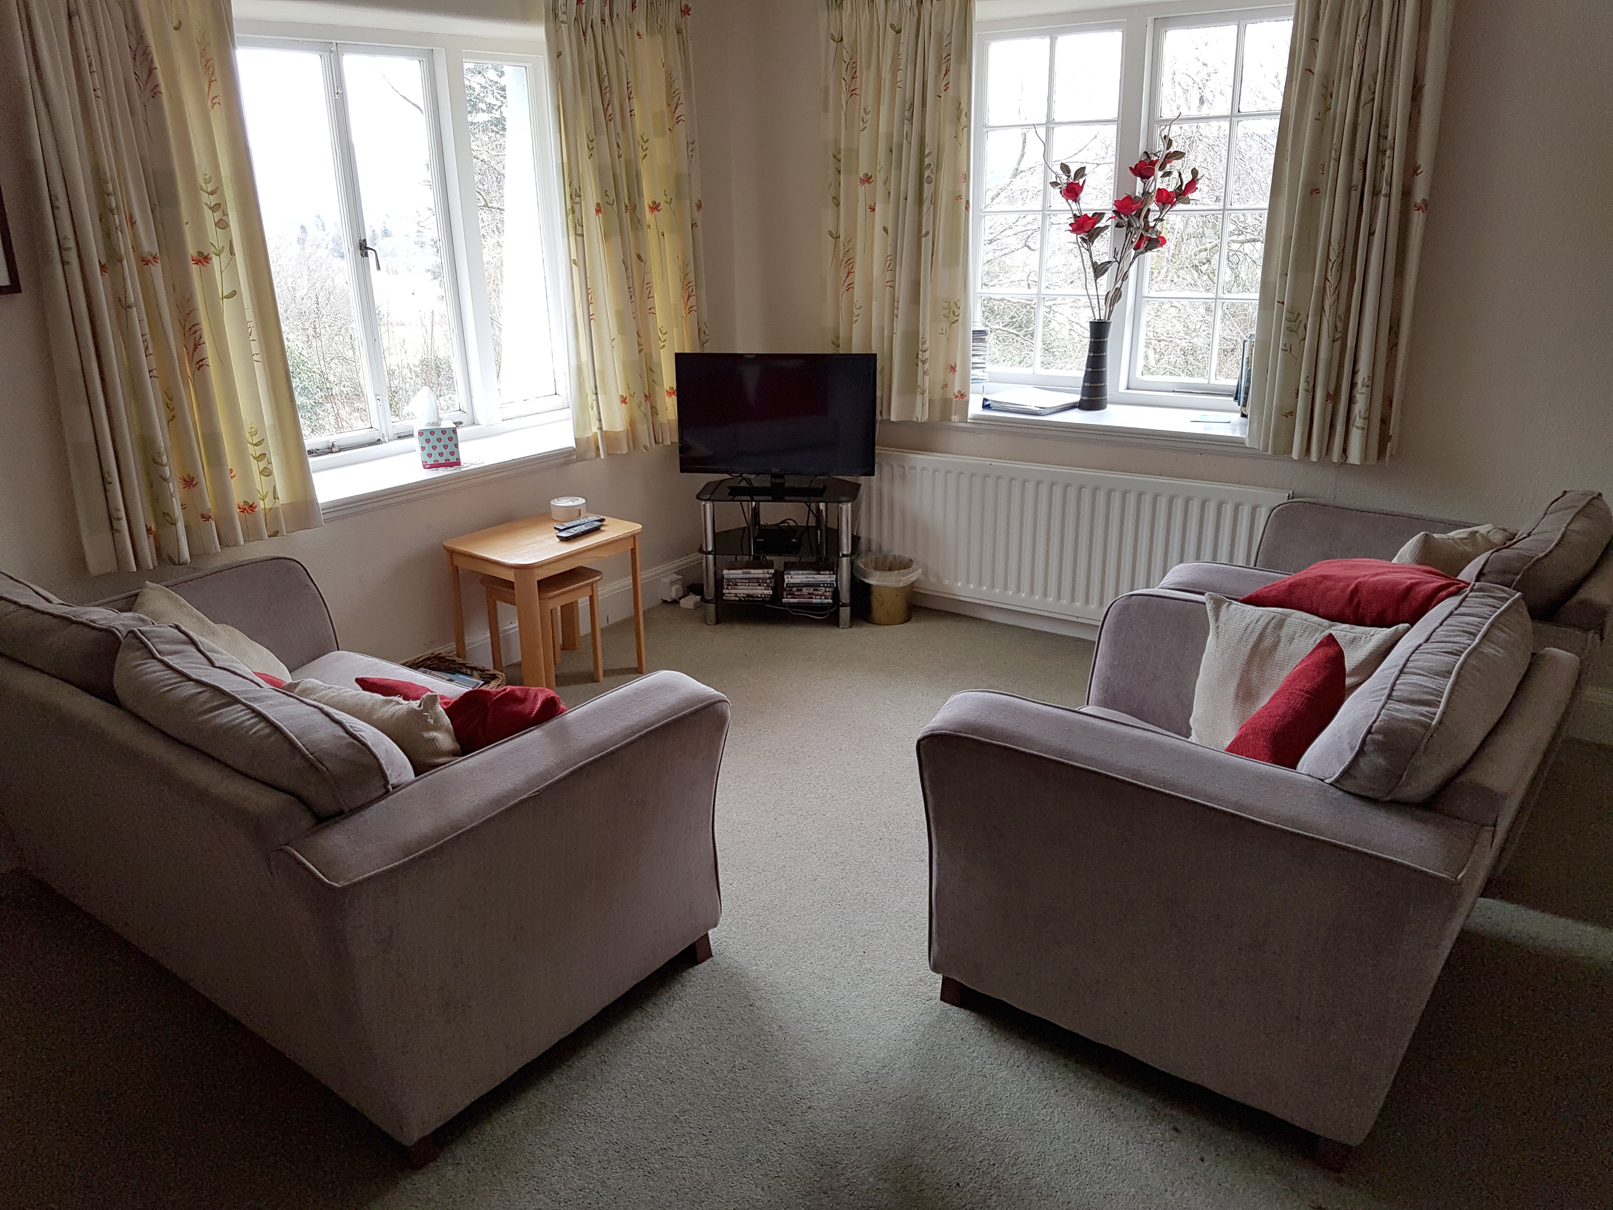 Betty Fold Self Catering Holidays Lake District